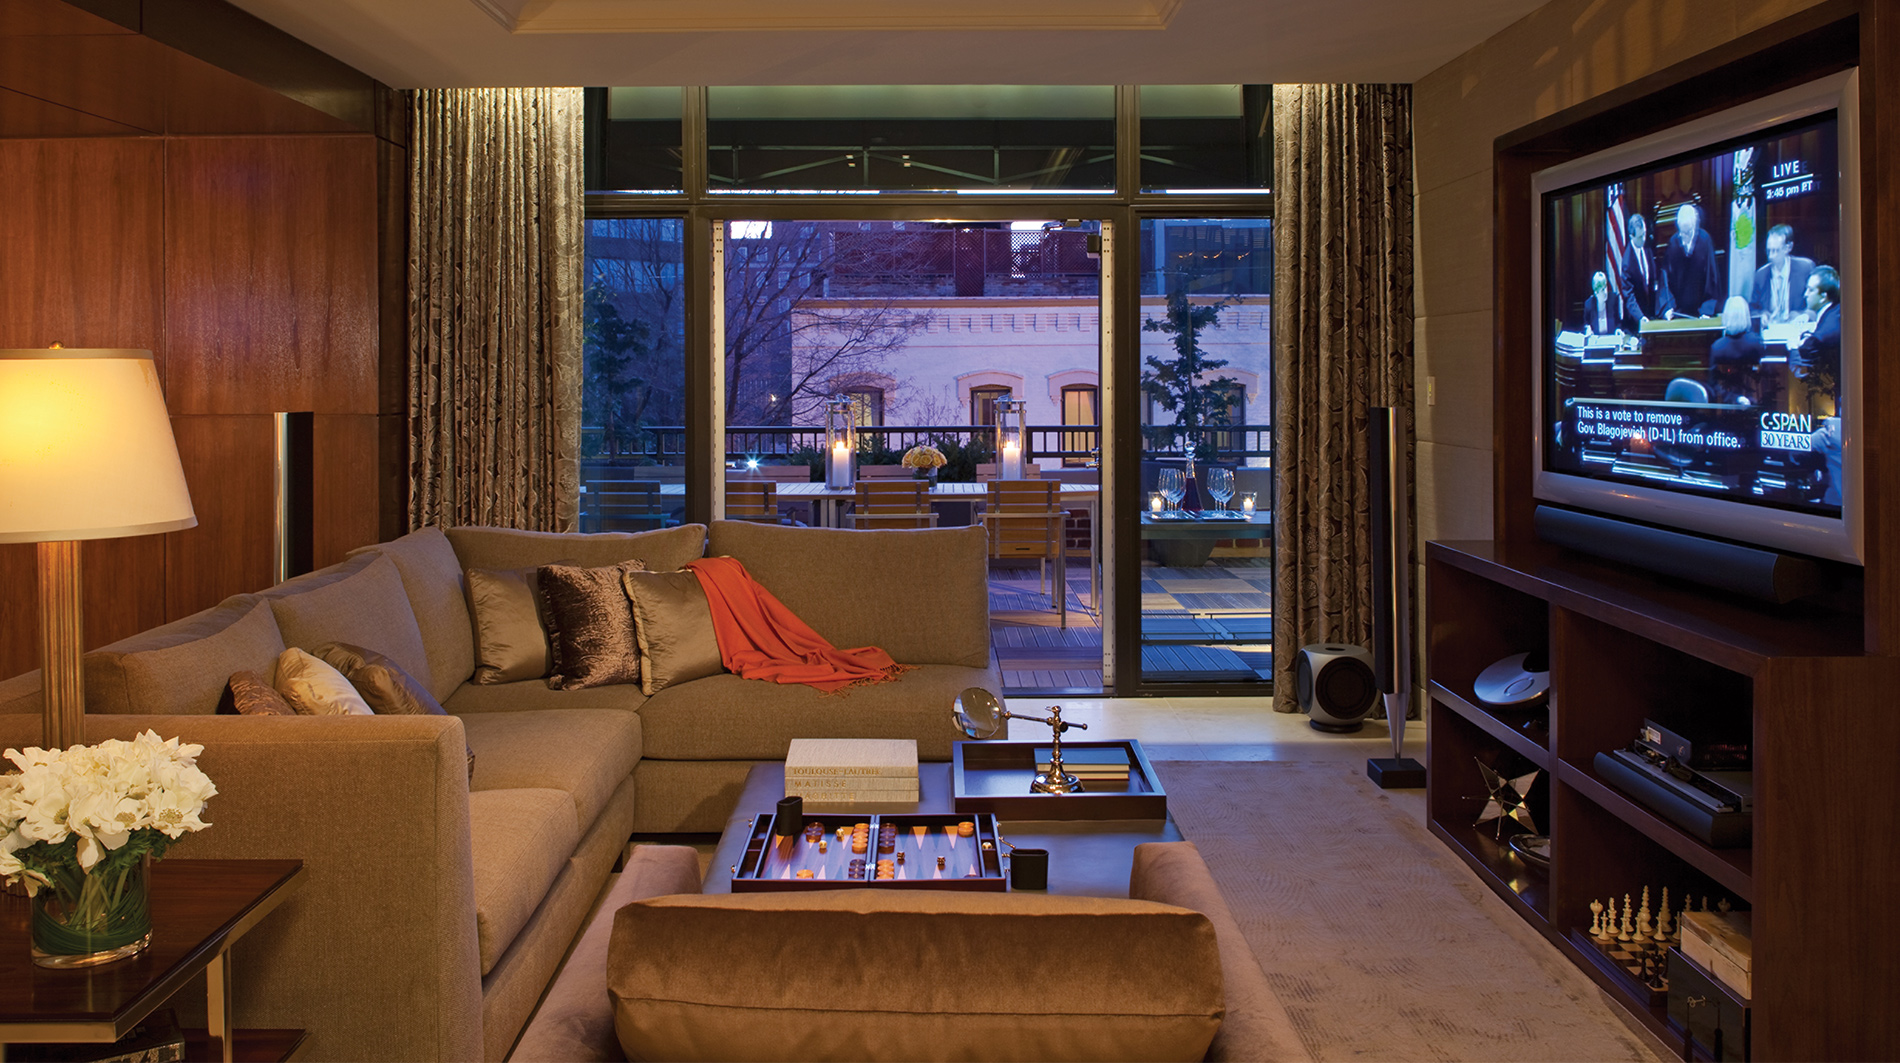 Have A Cozy Winter Getaway In D.C.